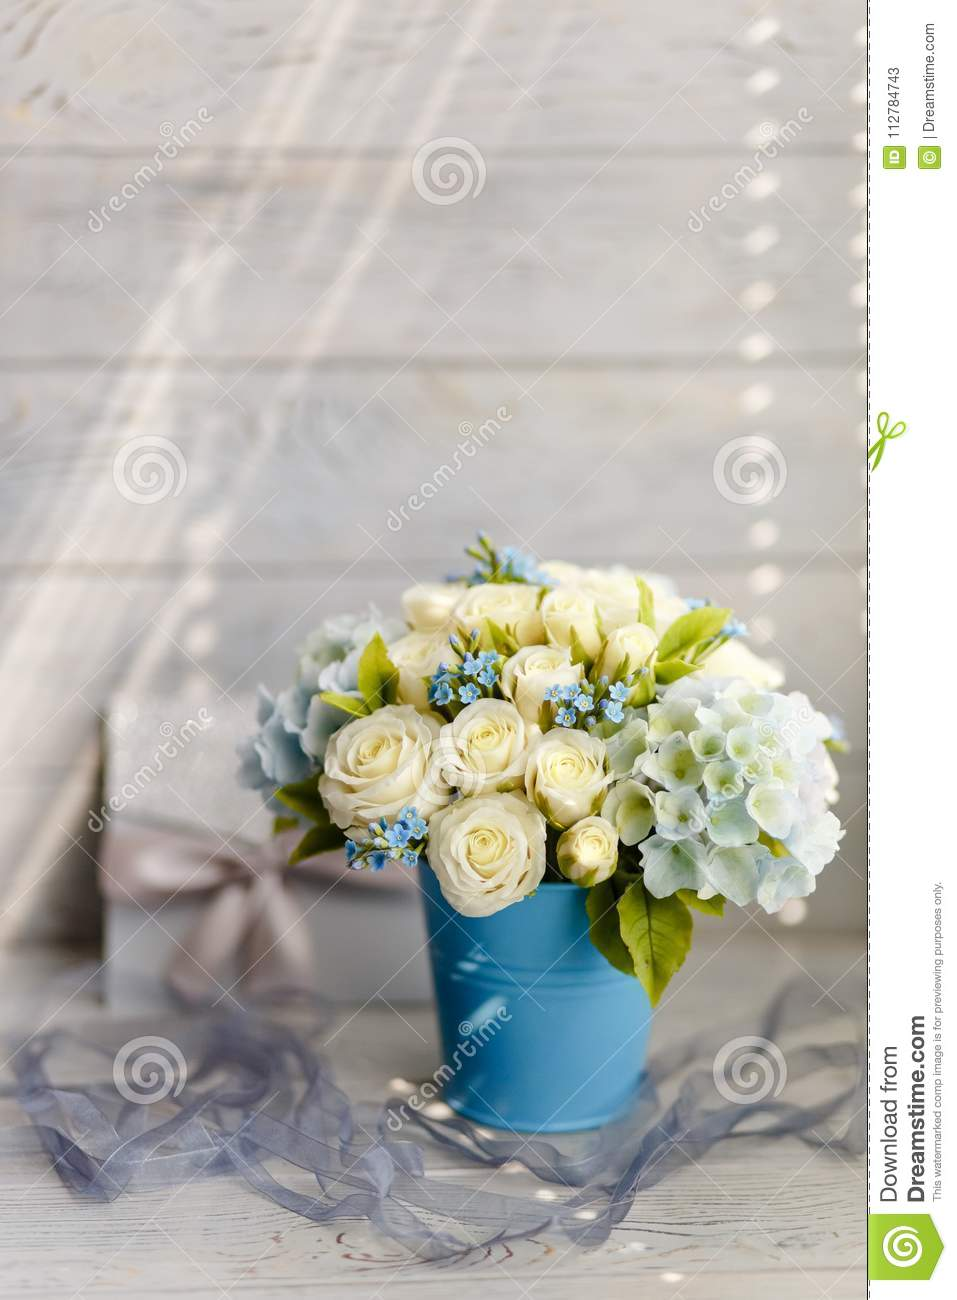 Blue and white wedding flowers stock image image of desserts download blue and white wedding flowers stock image image of desserts candle izmirmasajfo